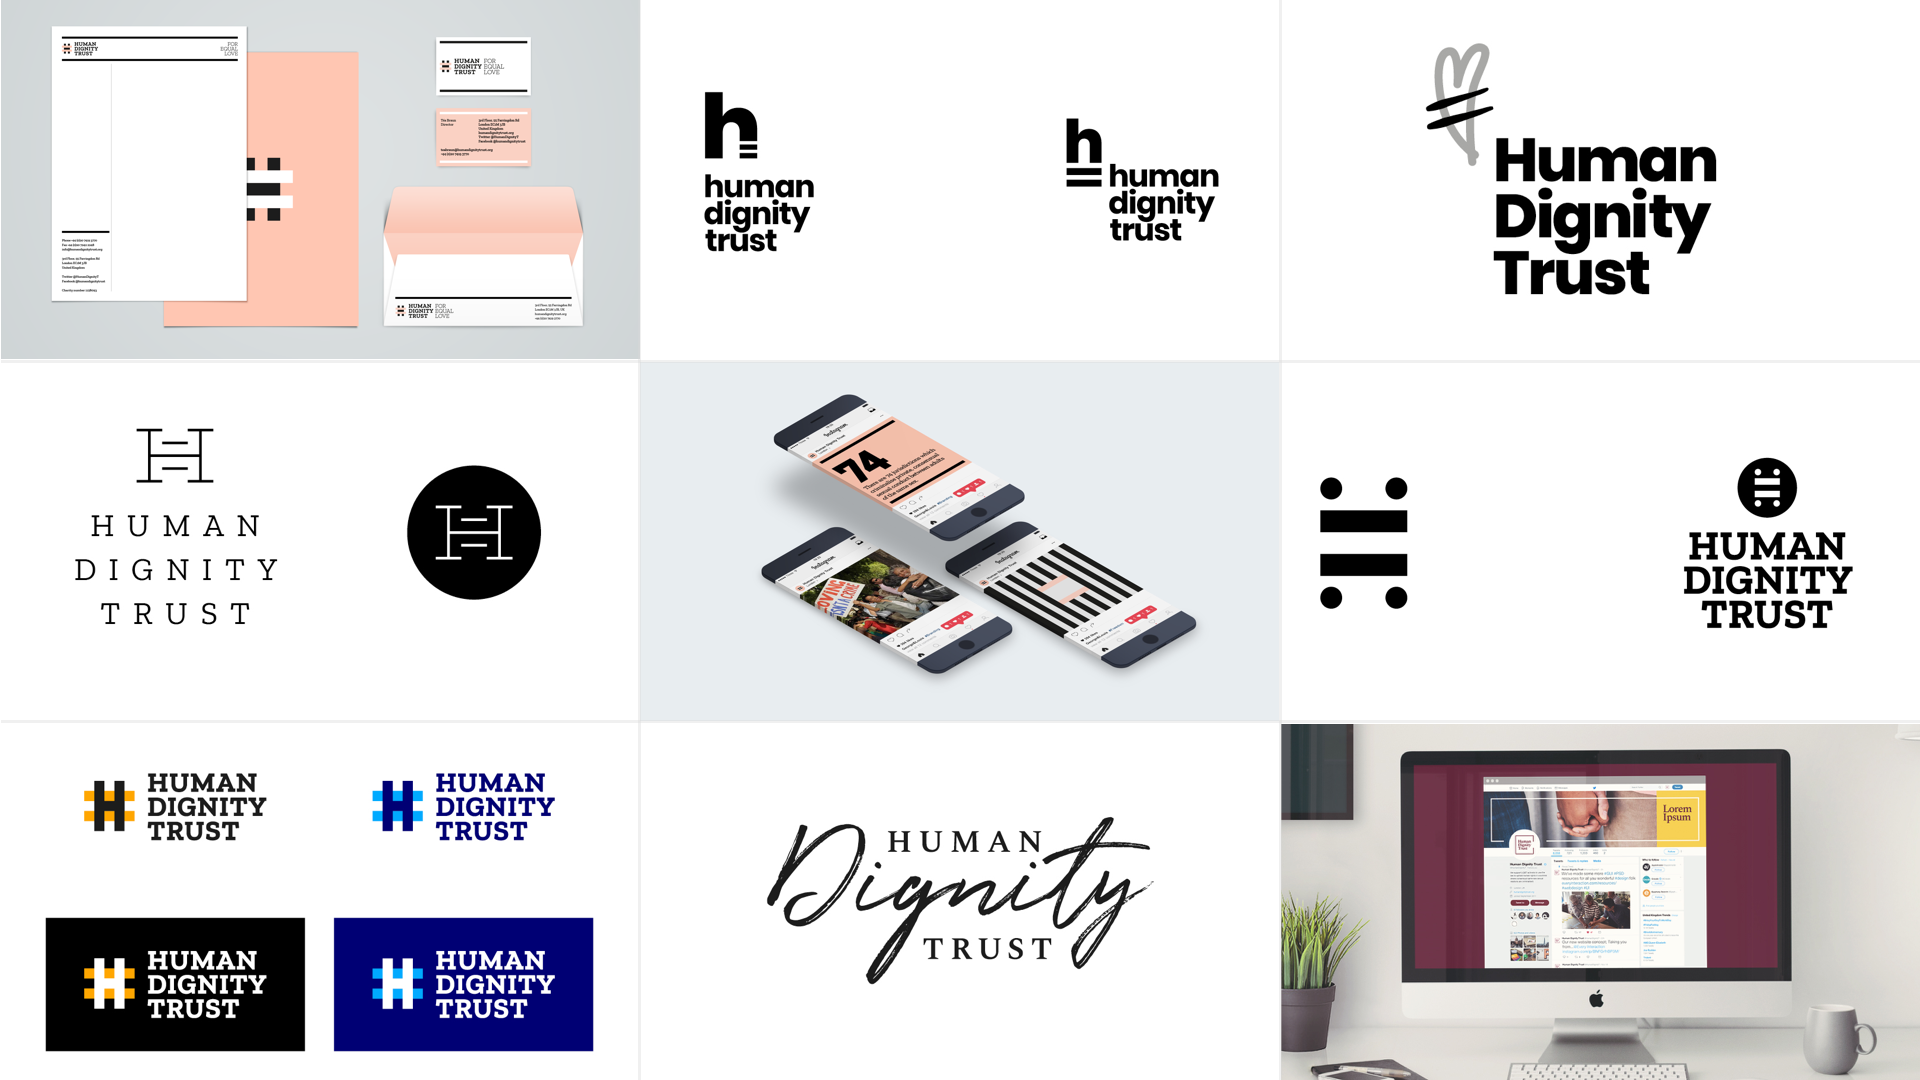 Human Dignity Trust mood boards and logo explorations